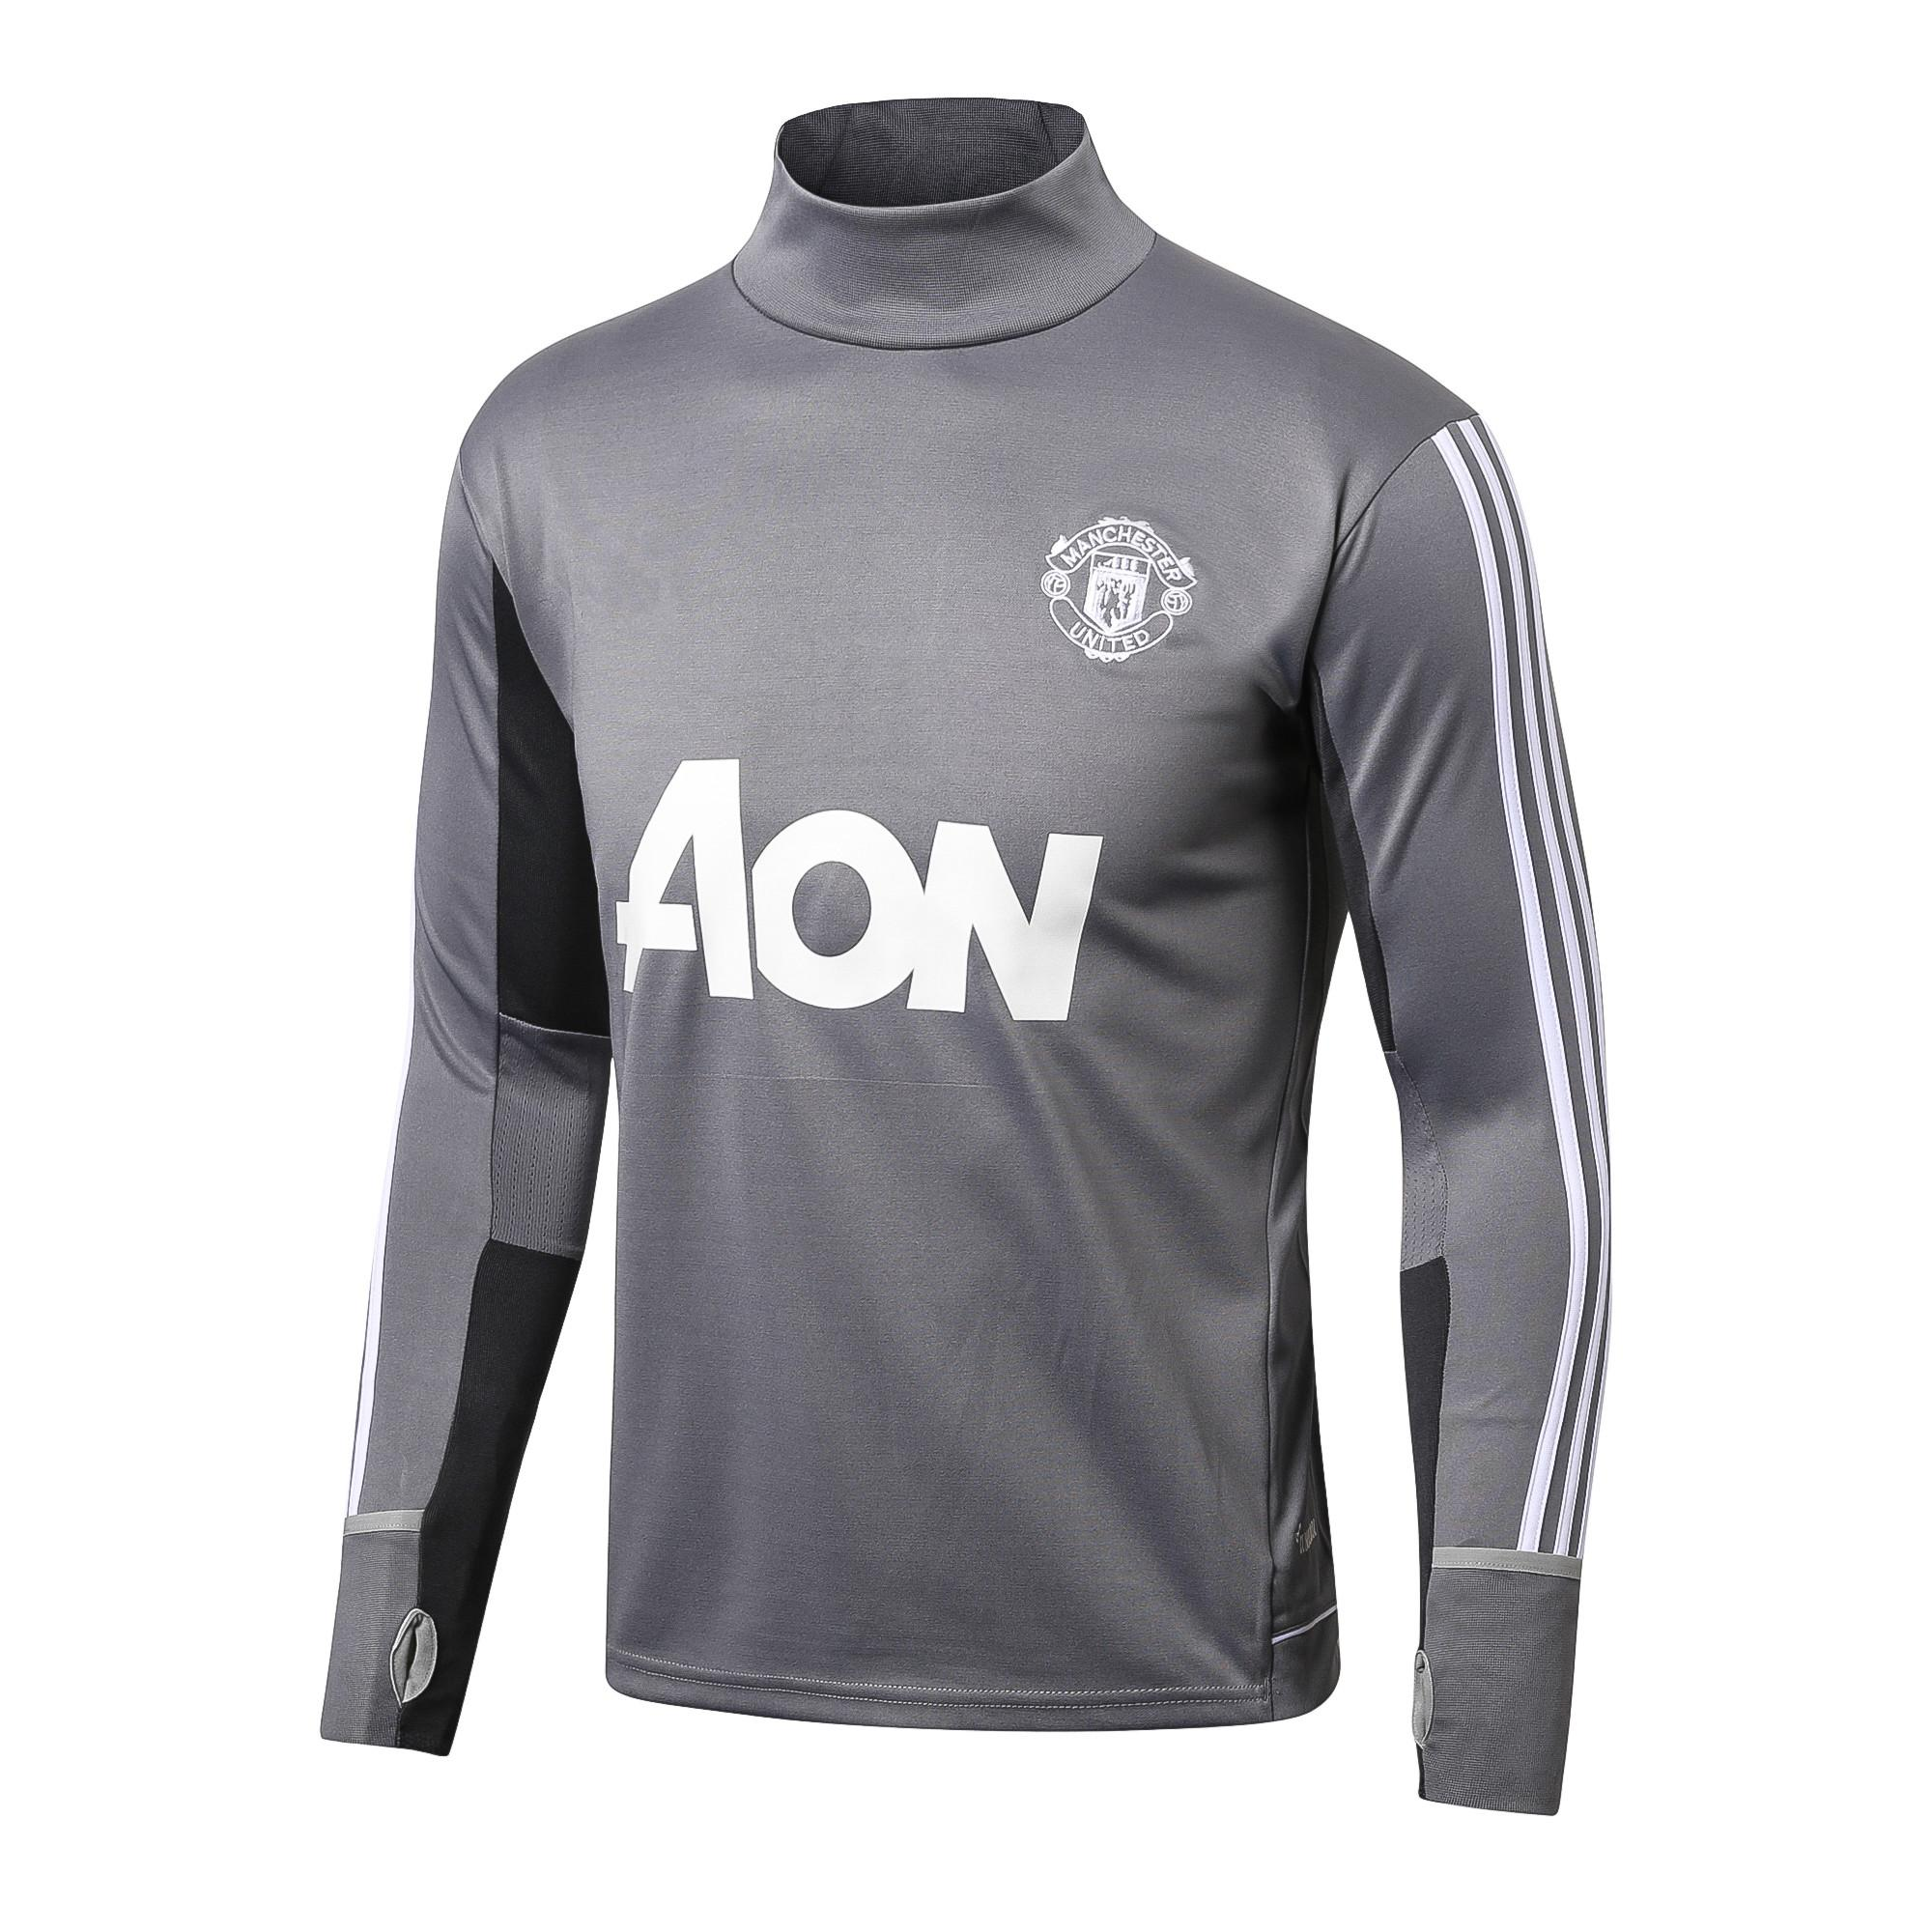 Soccer Jerseys For Sale Mens Football Online Brands Fashion Big Size T Shirt World Cup Argentina 2xl Top Quality Manchester United Long Sleeve Home Jersey Training Wear